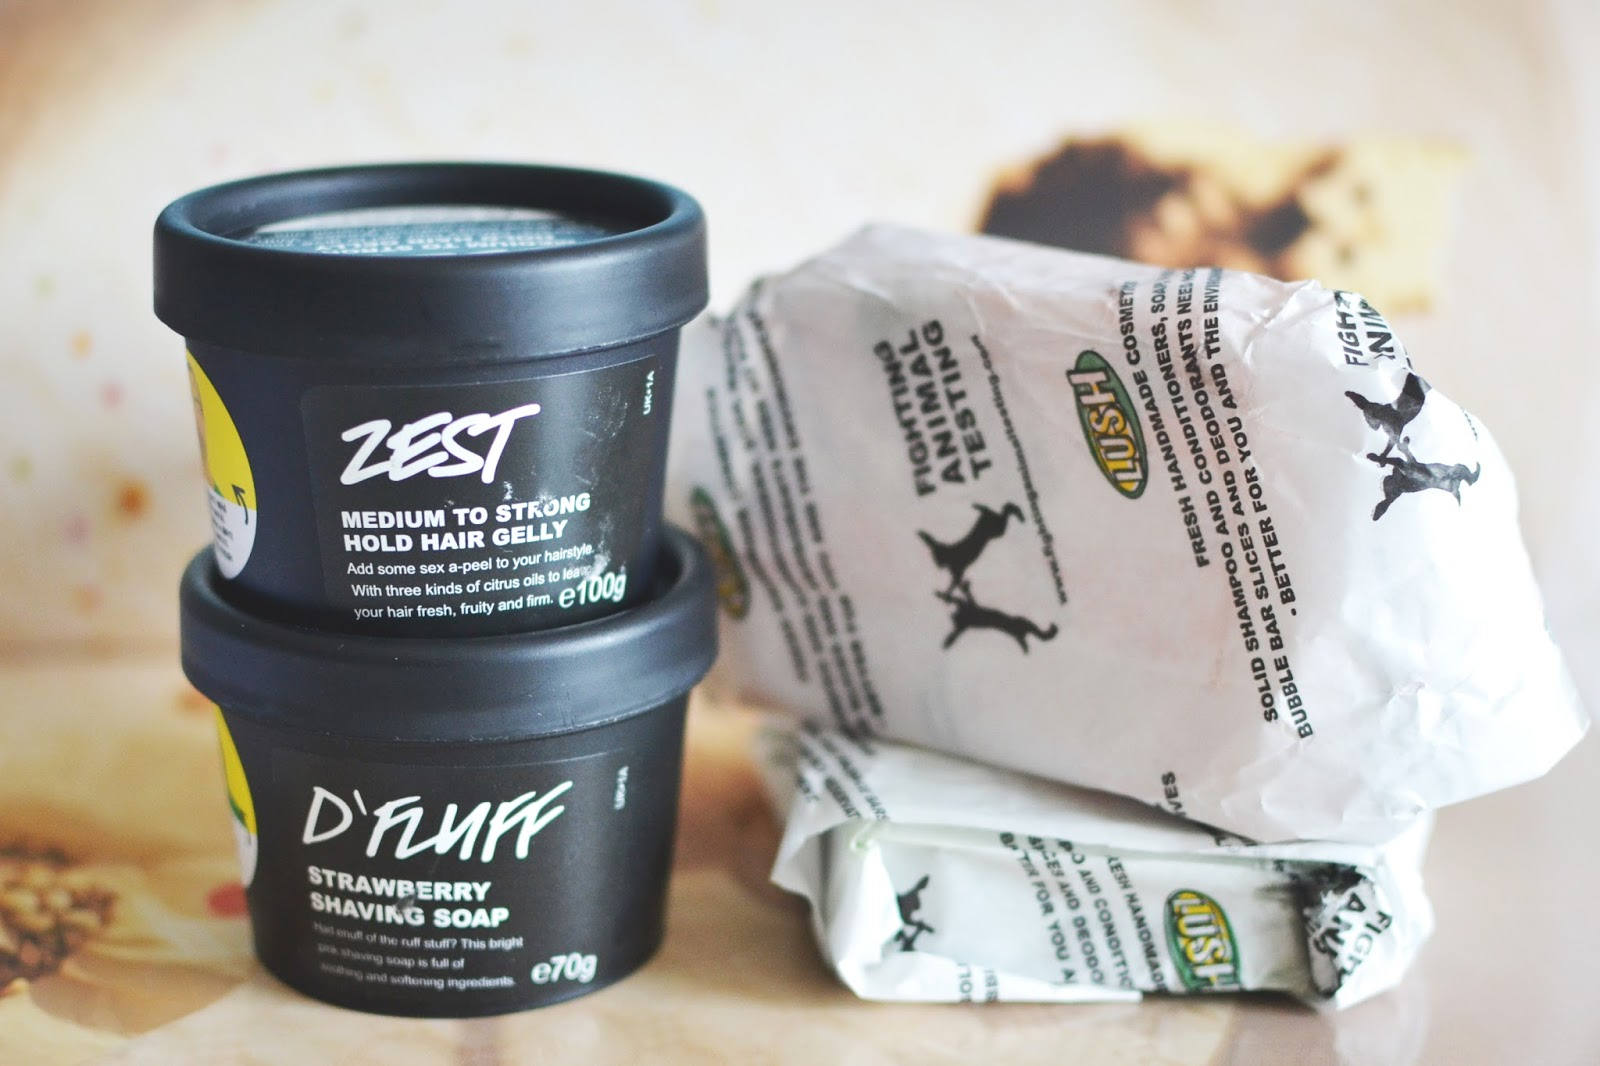 lush haul, new products from lush summer range